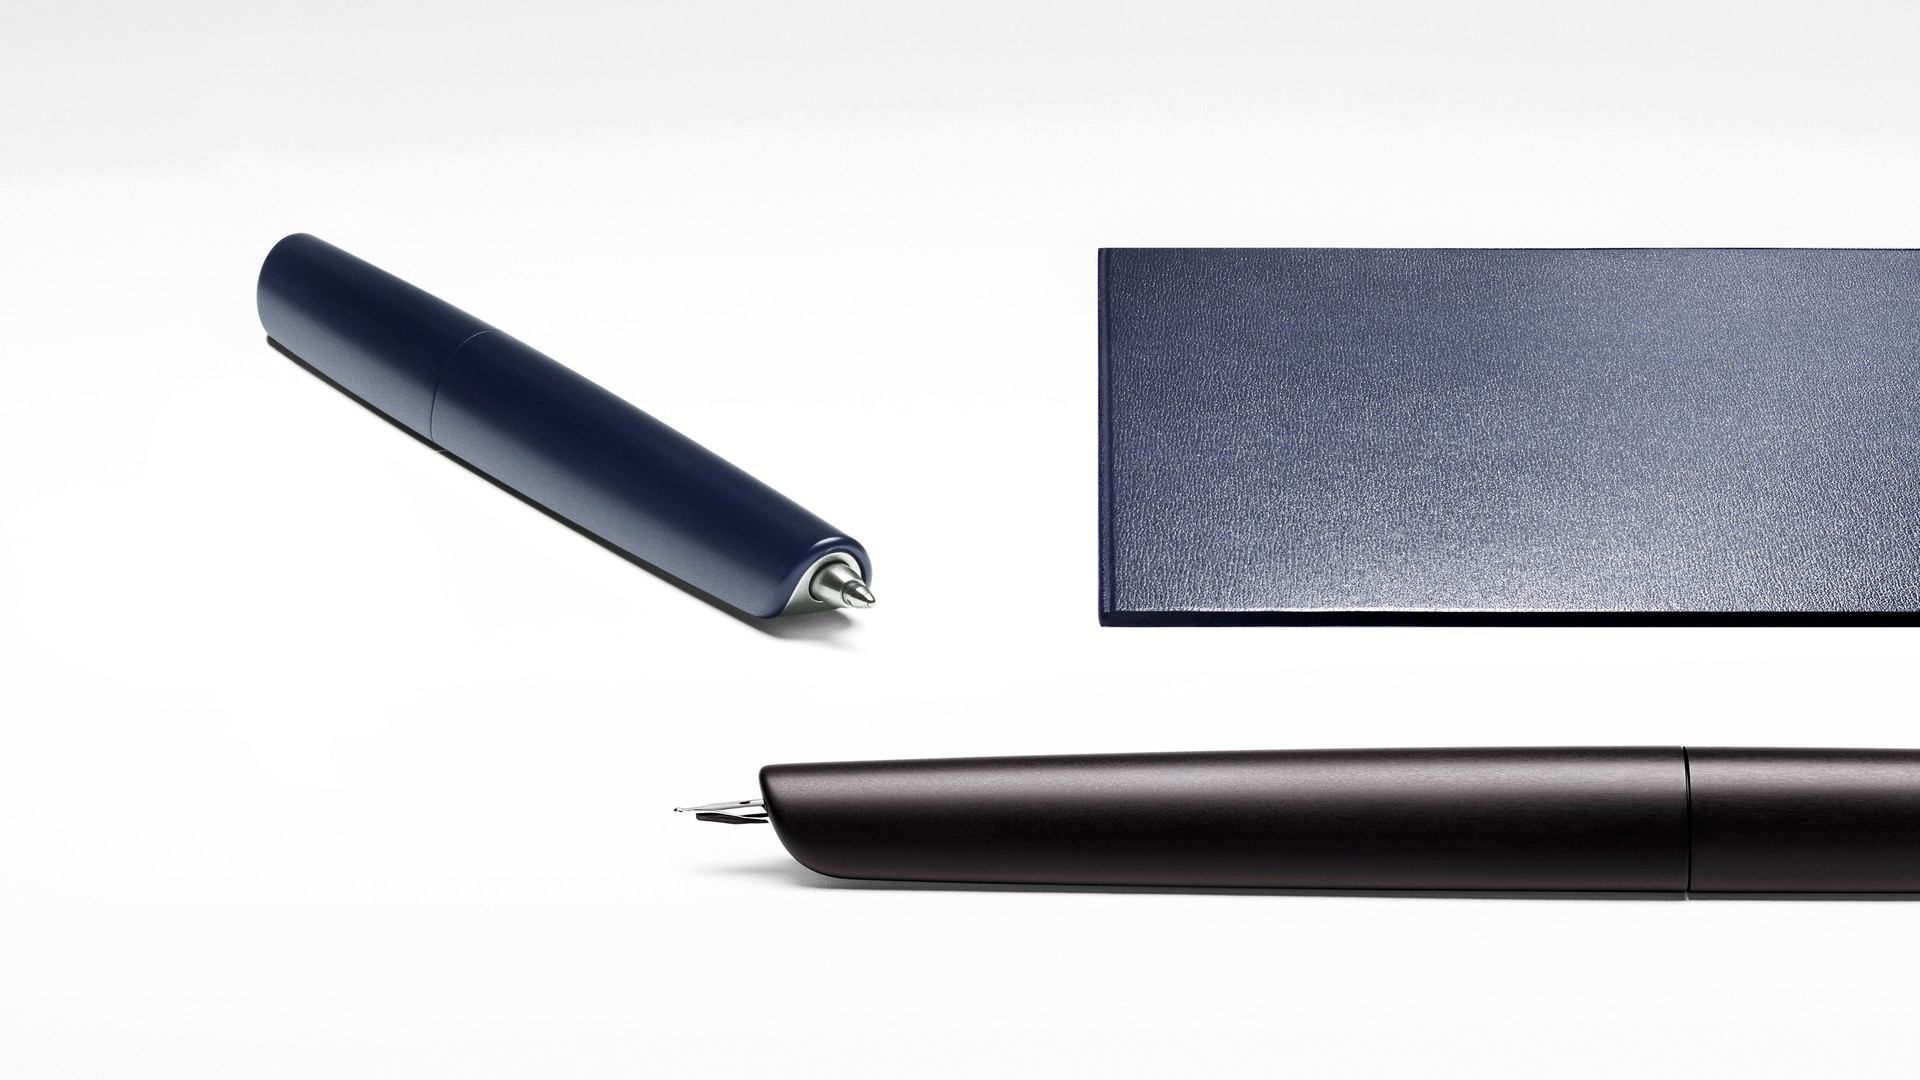 Nautilus Retractable Pen